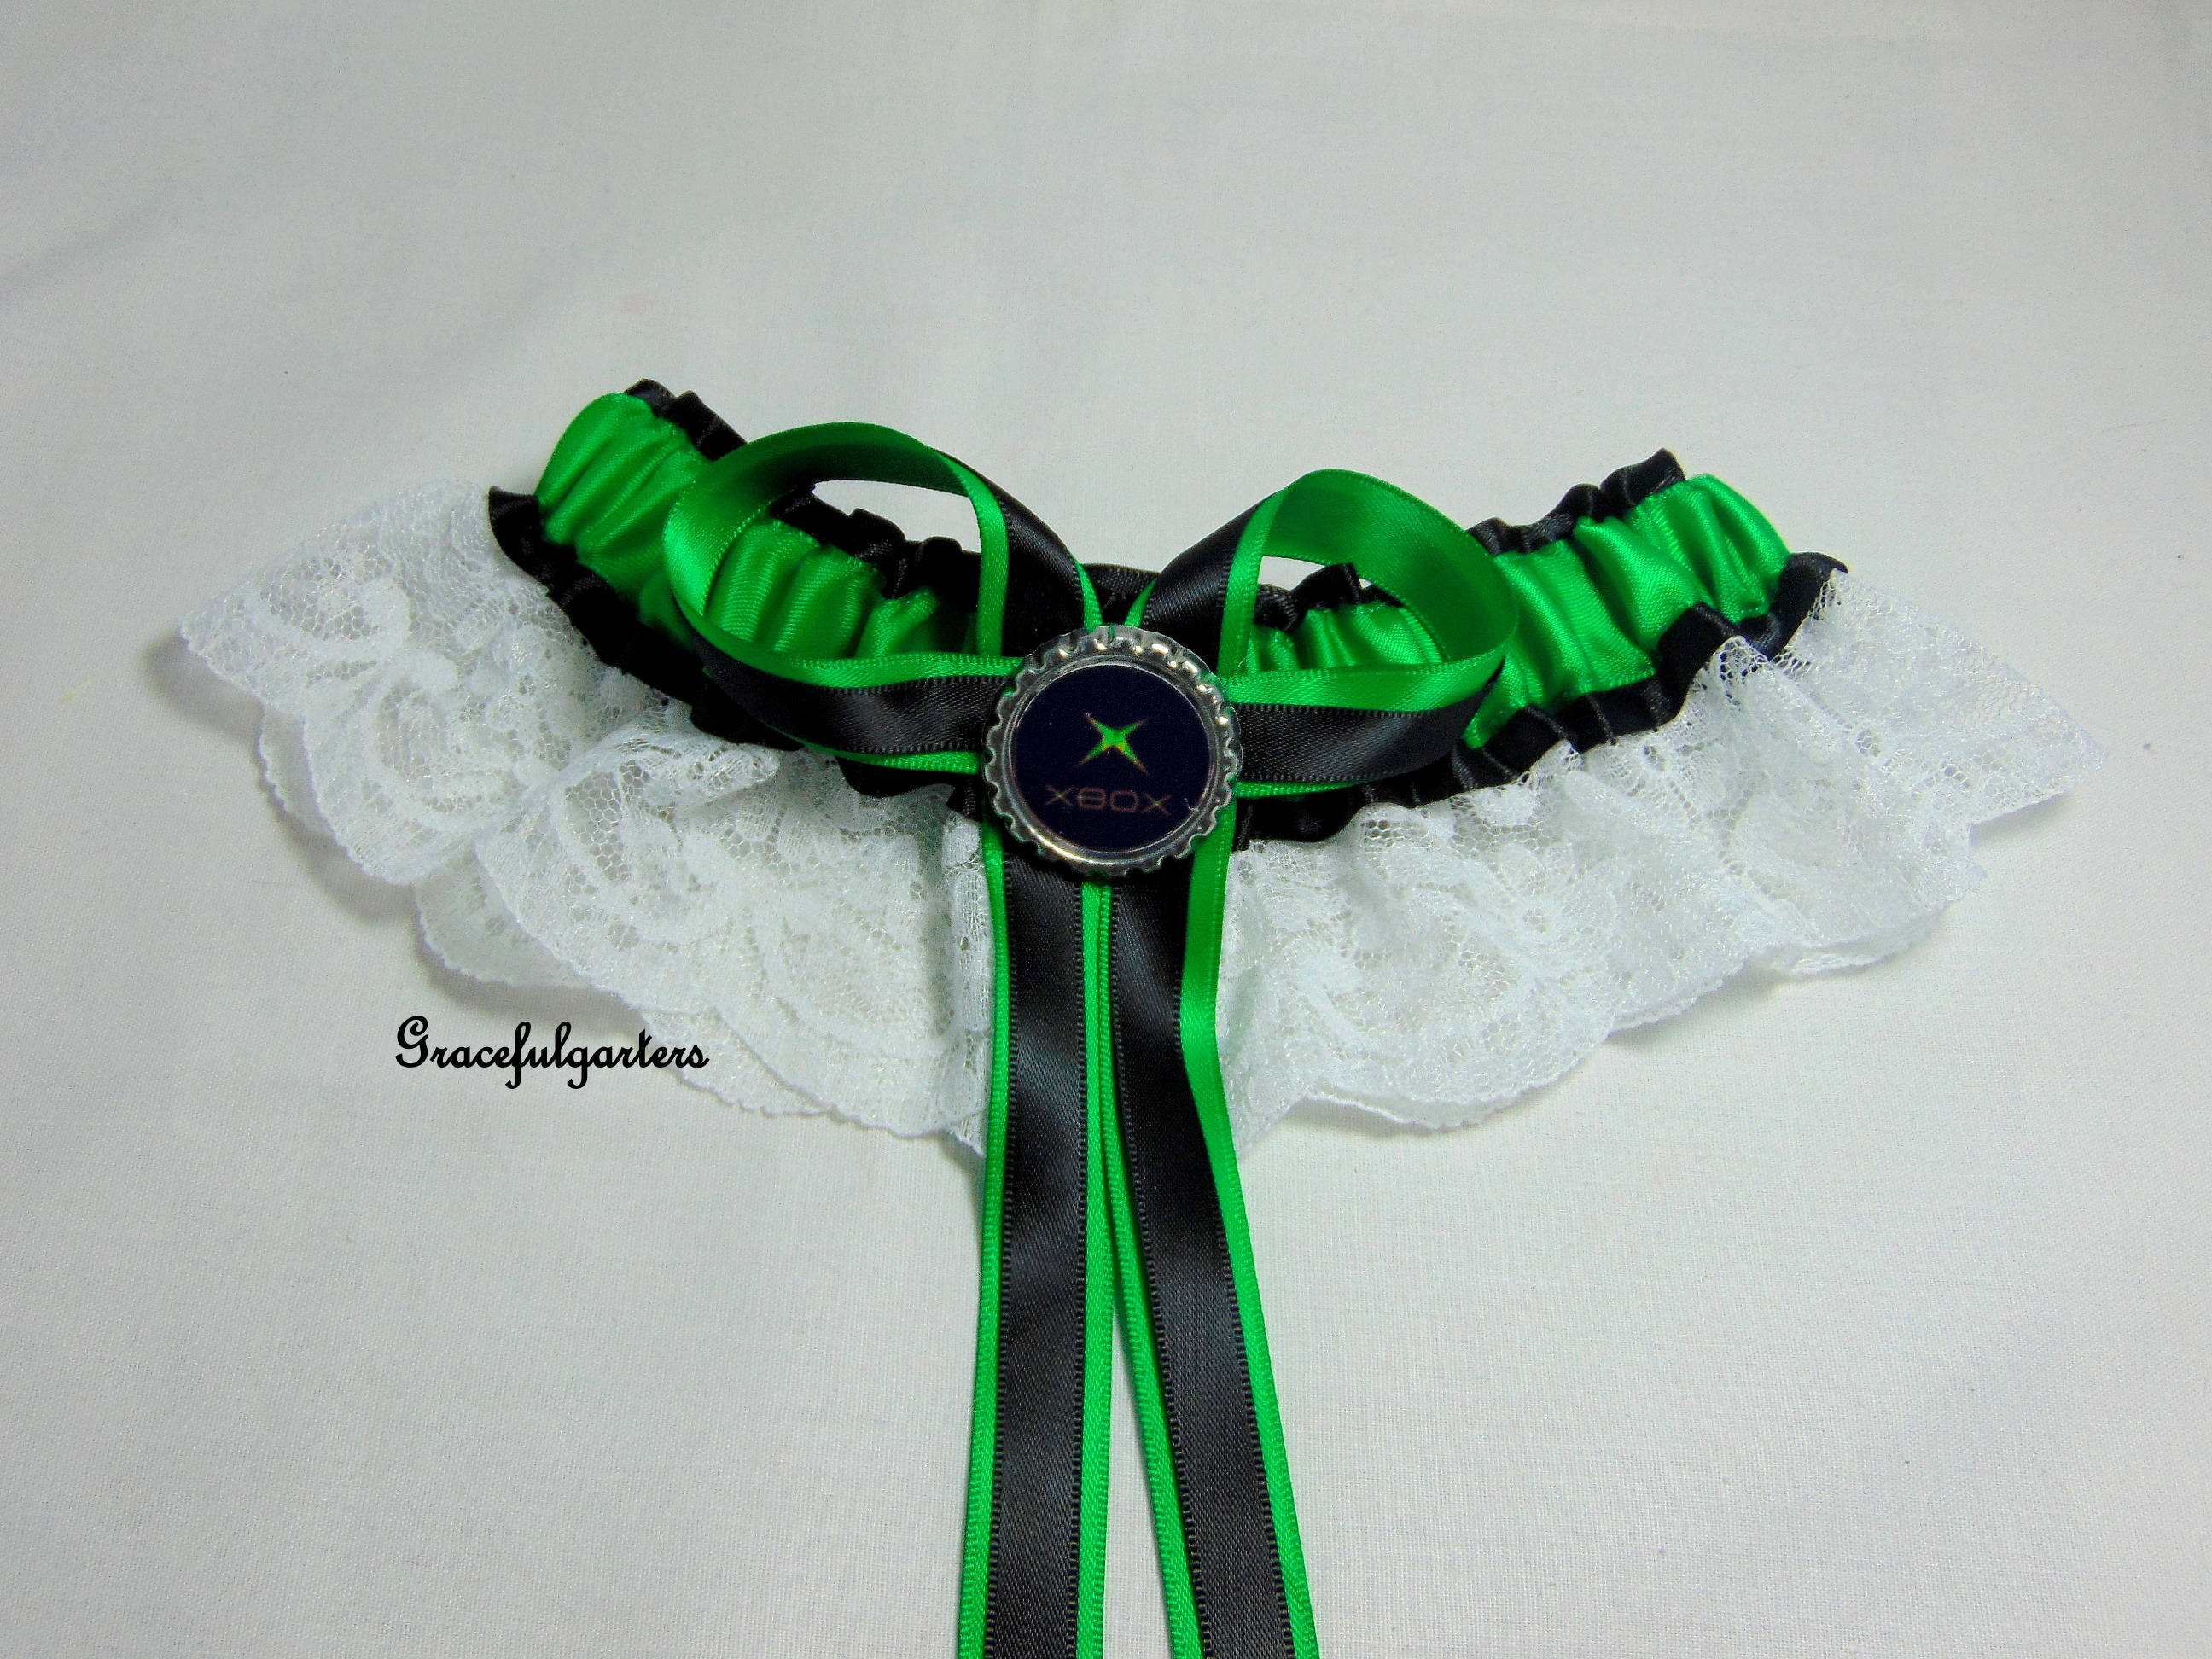 Ninetendo X Box Lace Bridal Wedding Garter